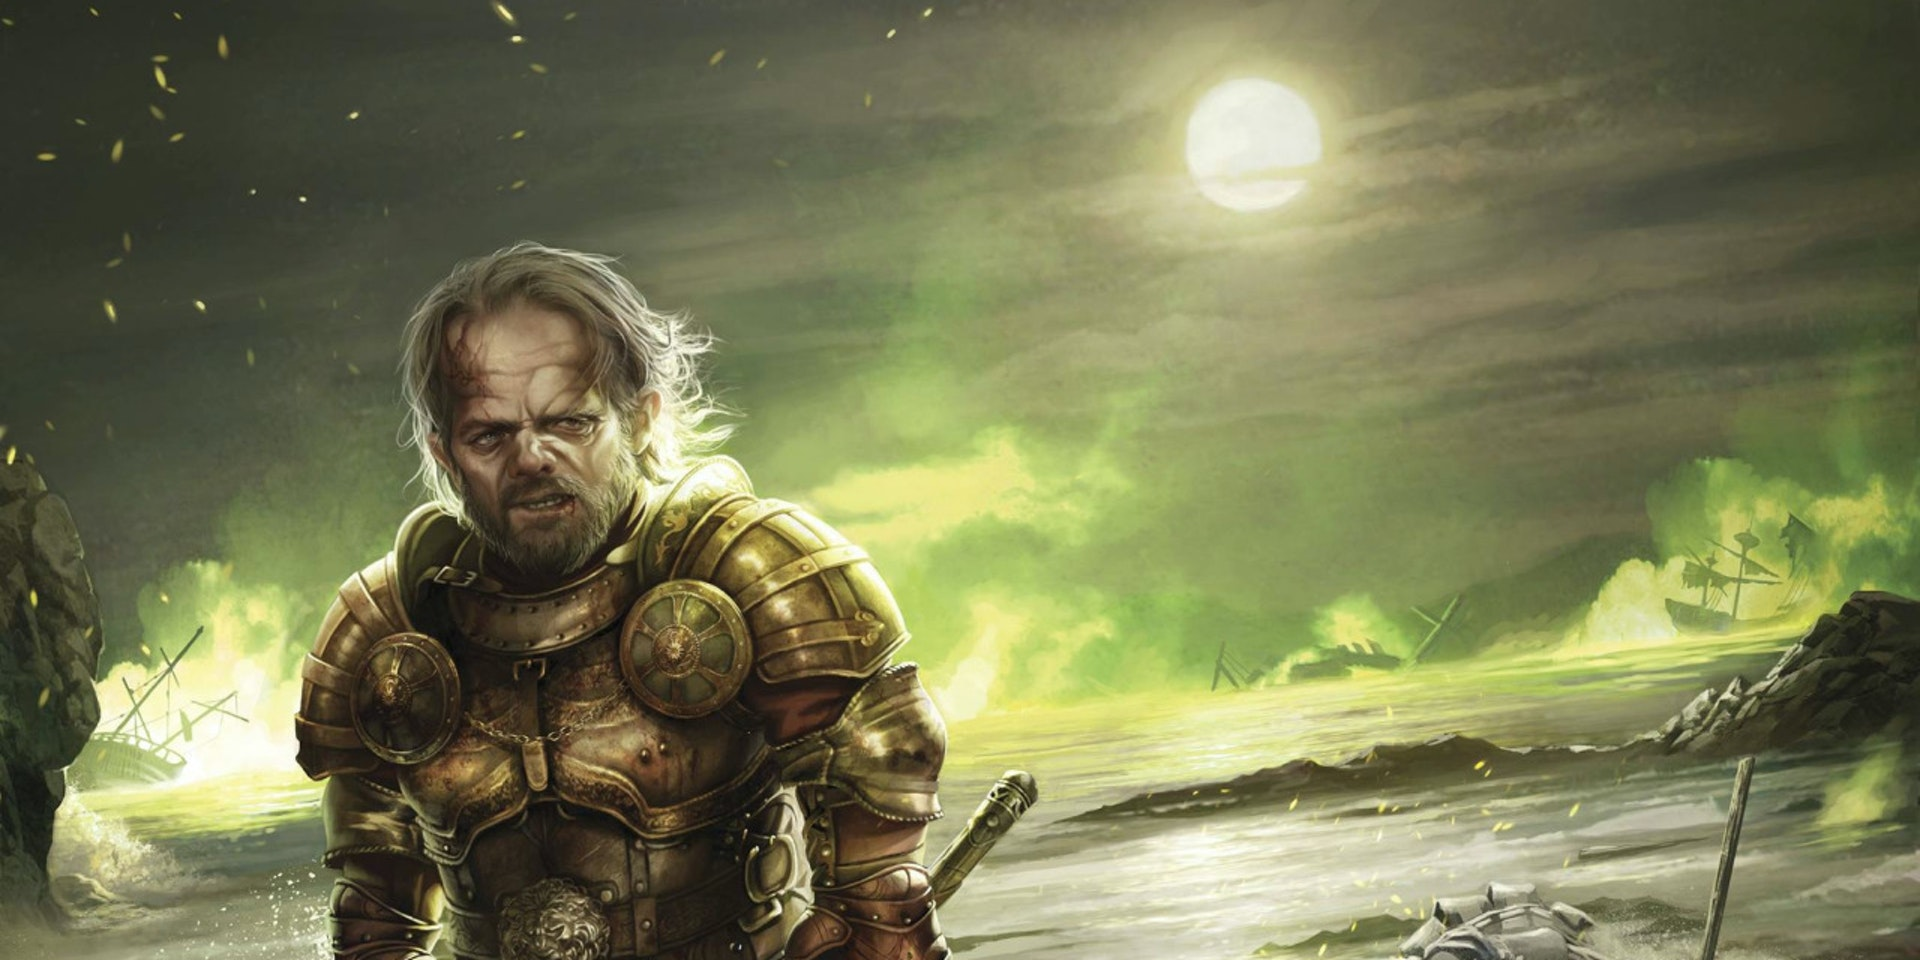 How Painting 'A Game of Thrones' Taught an Artist to Love the Lannisters